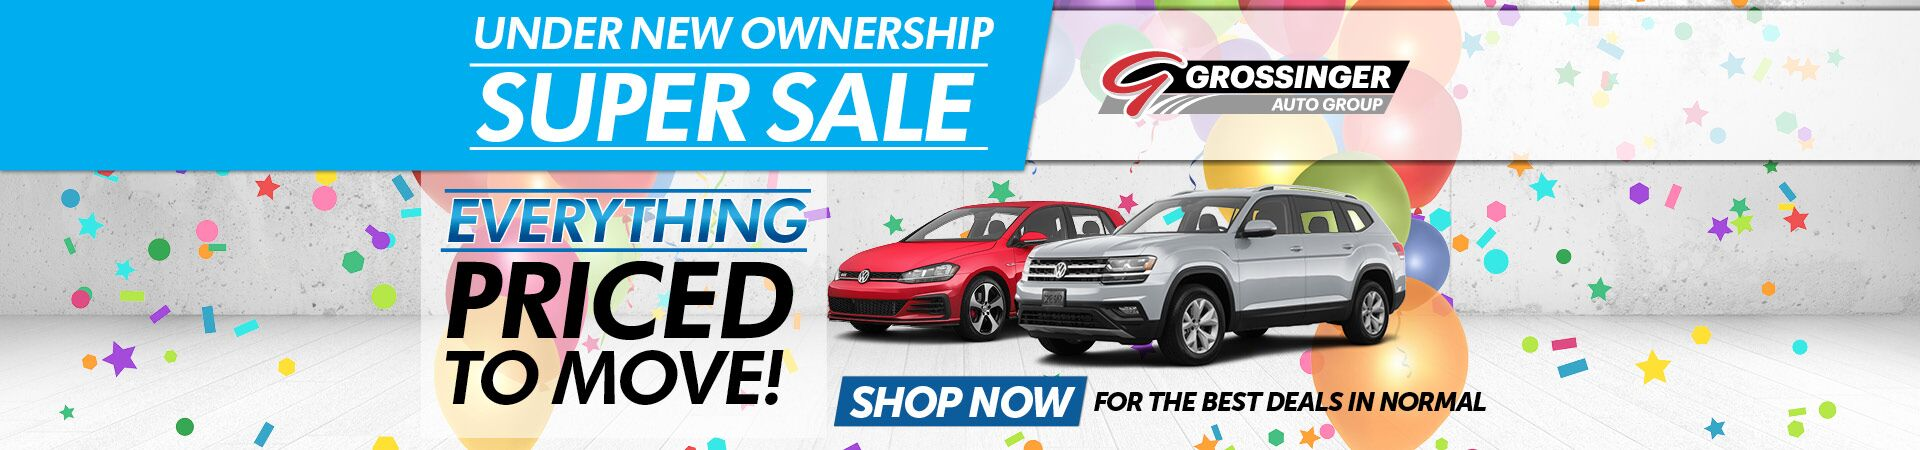 Under New Ownership Super Sale!